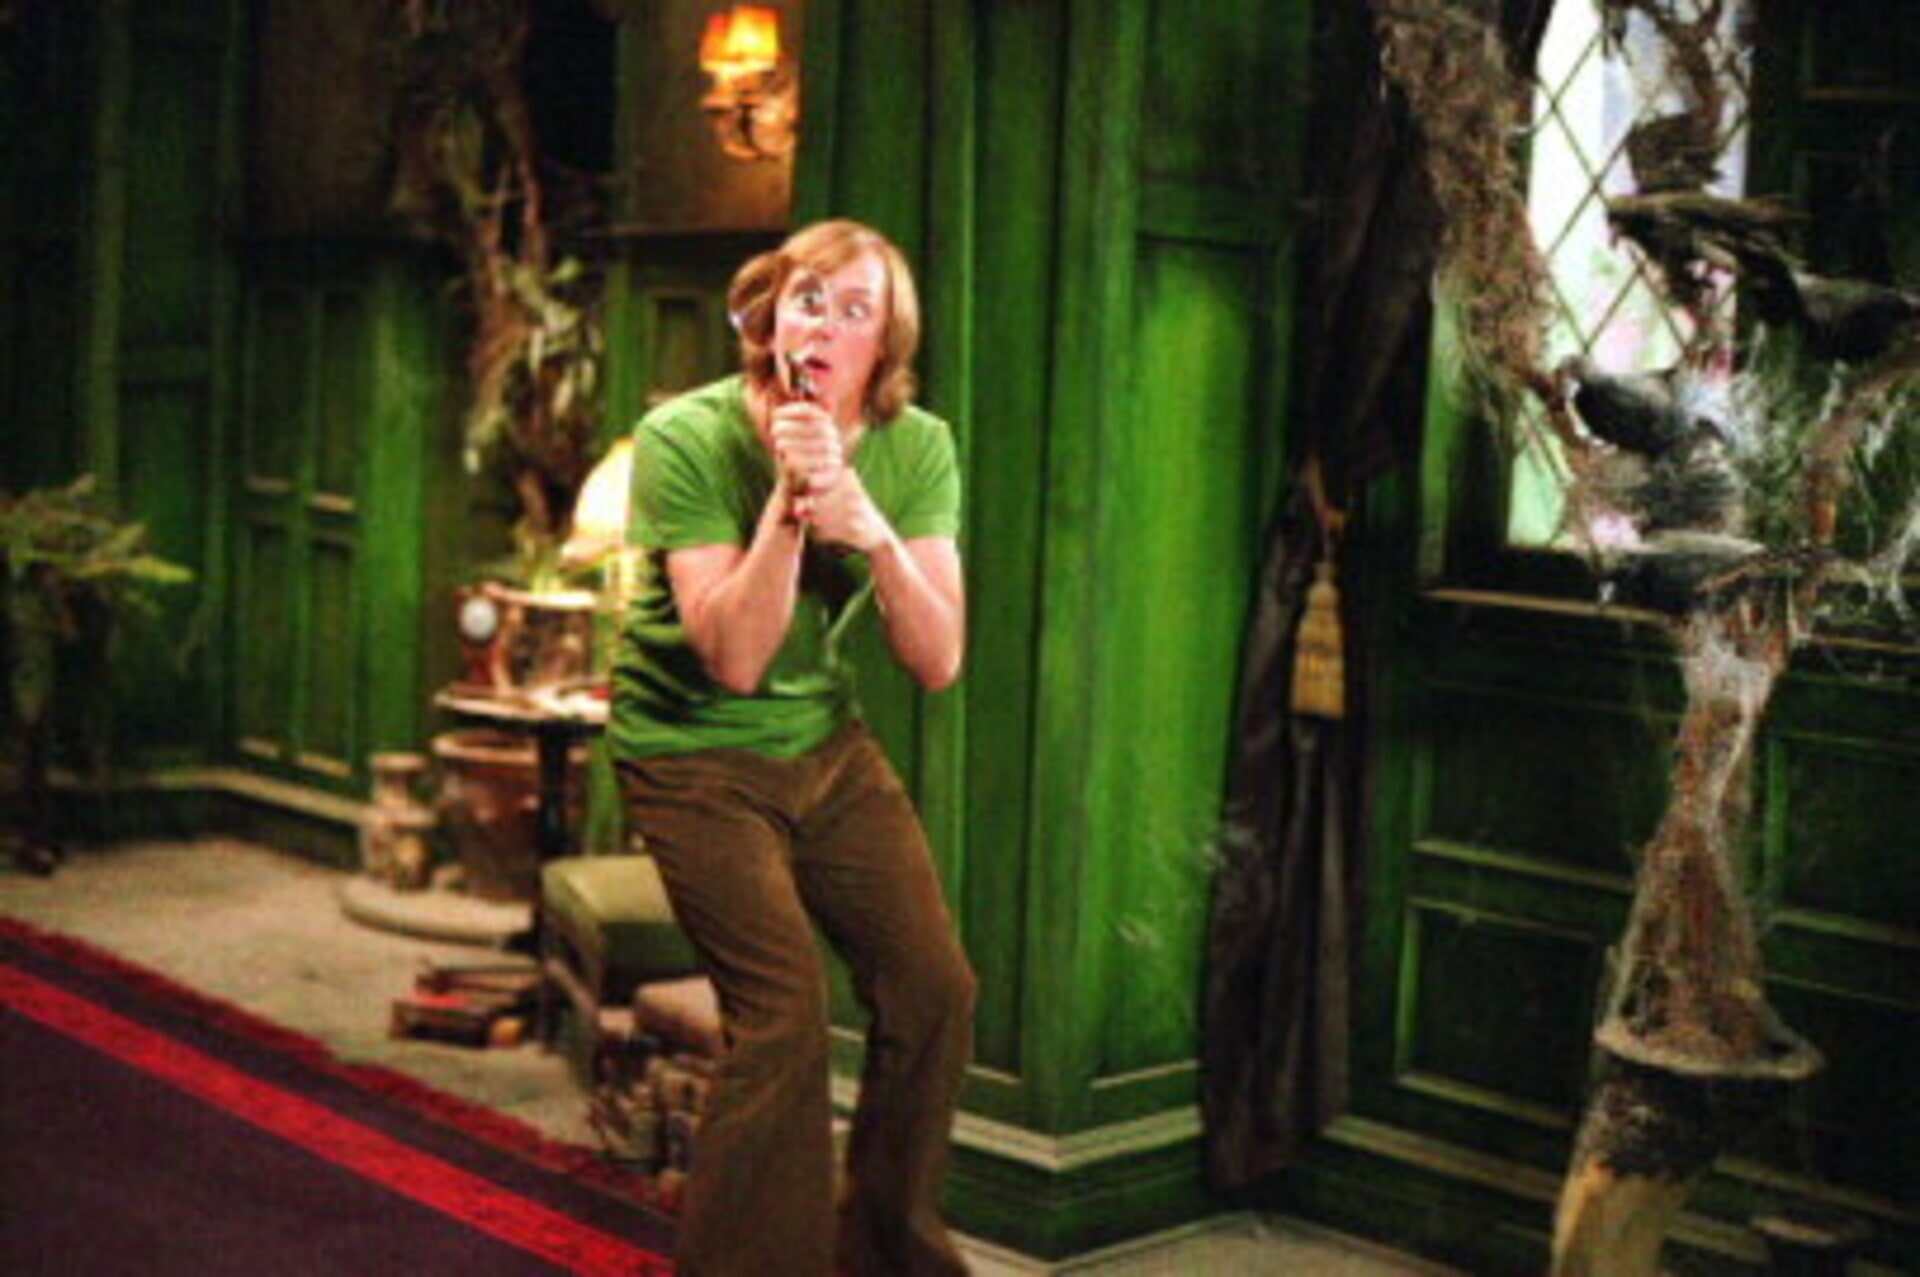 Scooby-doo 2: Monsters Unleashed - Image 33